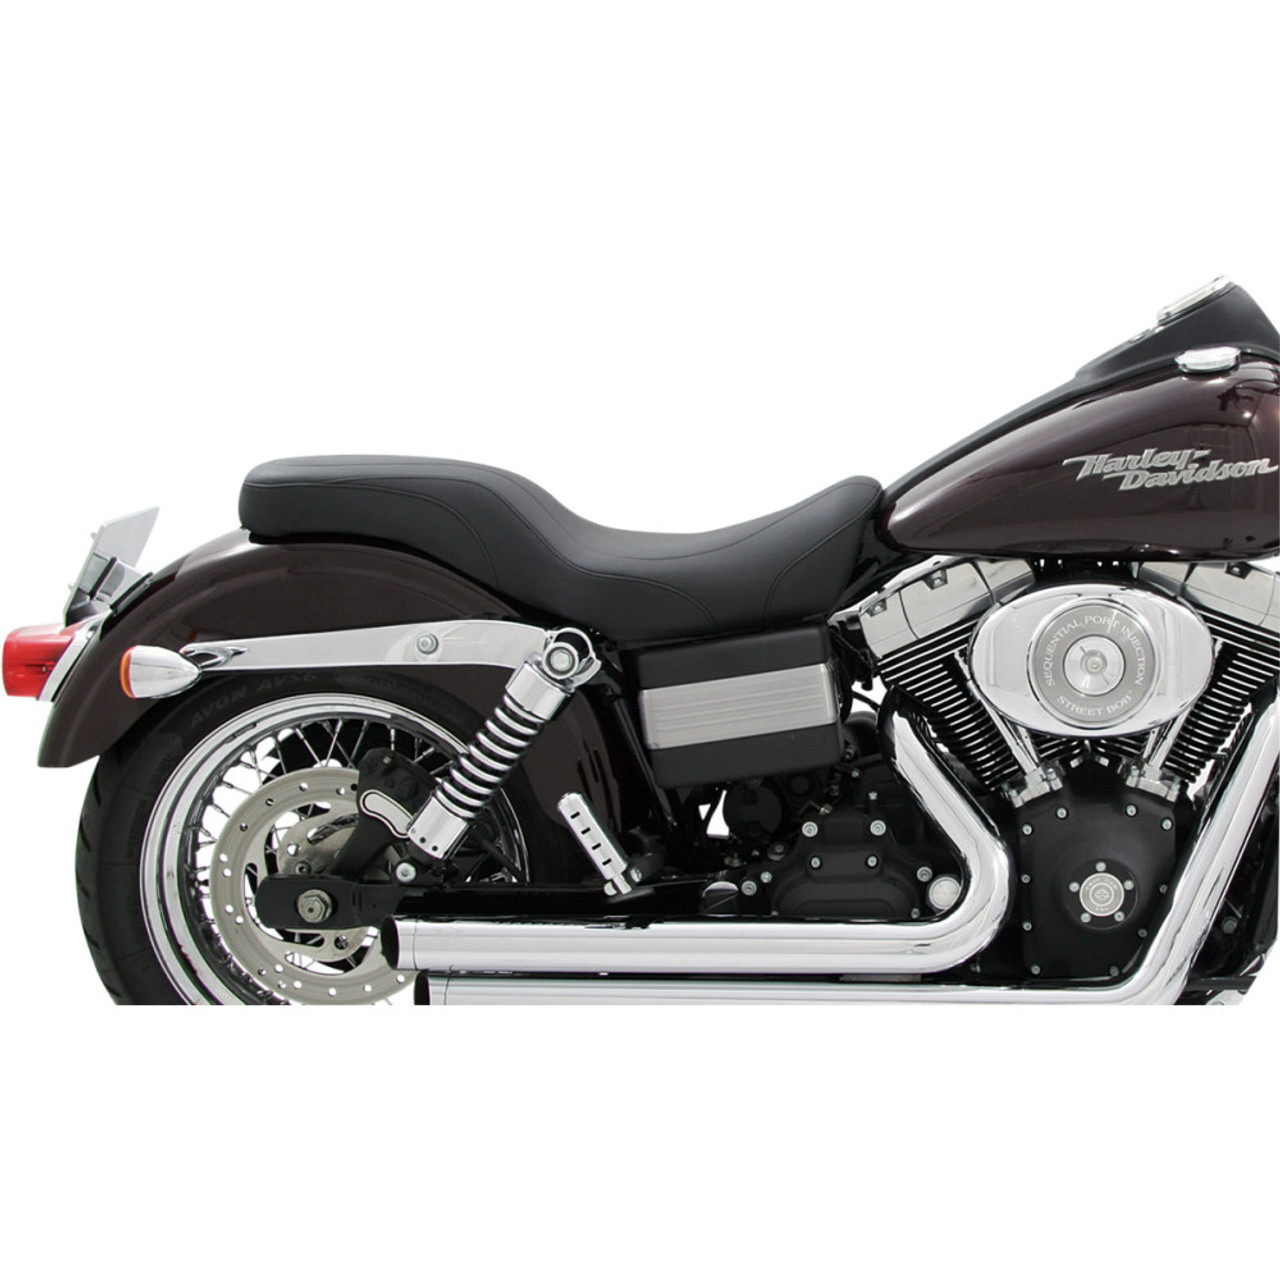 Mustang Daytripper Seat for 2006-2017 Harley Dyna - Black